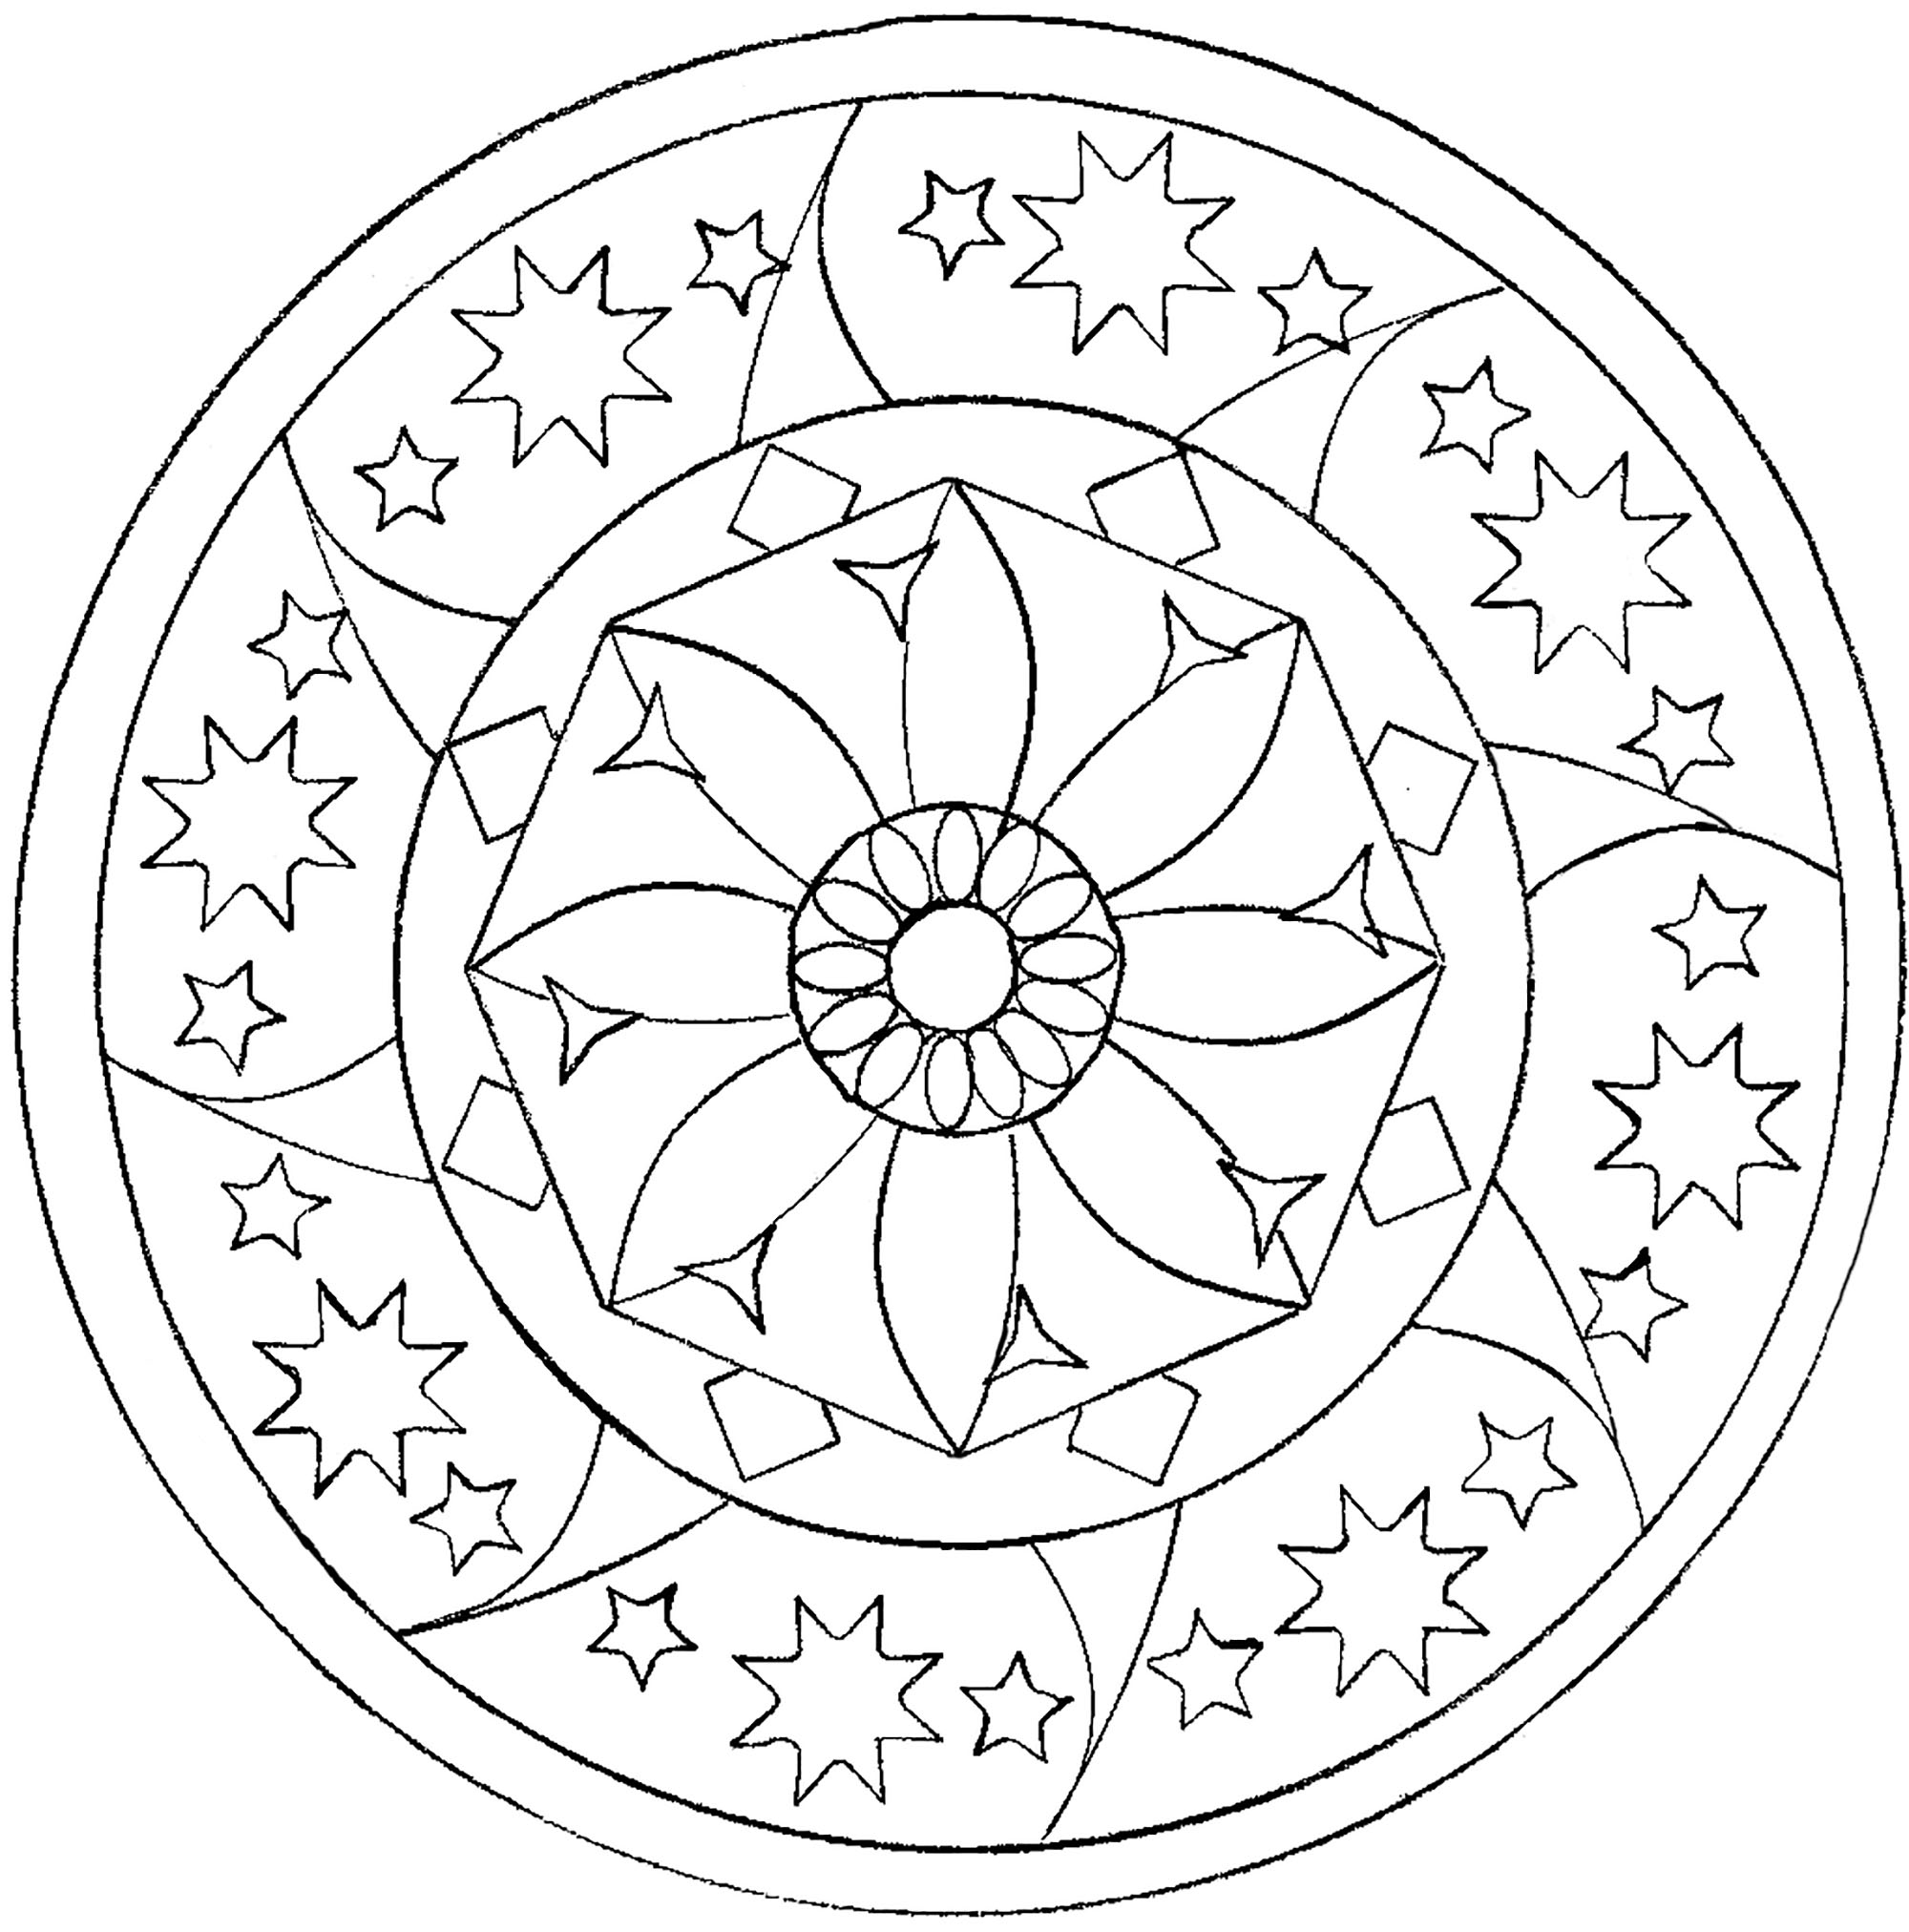 Zen Mandala With Stars And Flower In The Middle